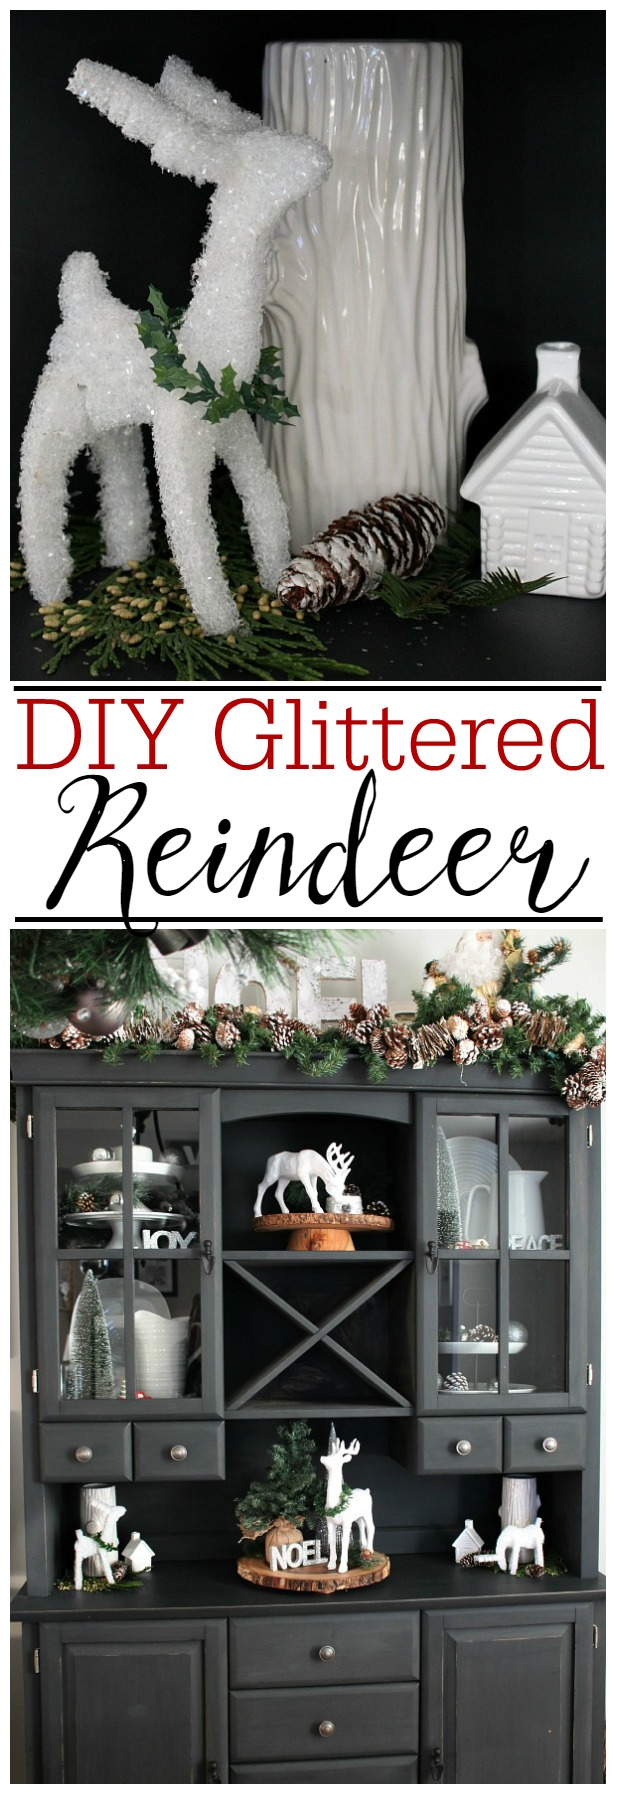 Make your own glittered reindeer from foam! Love these!